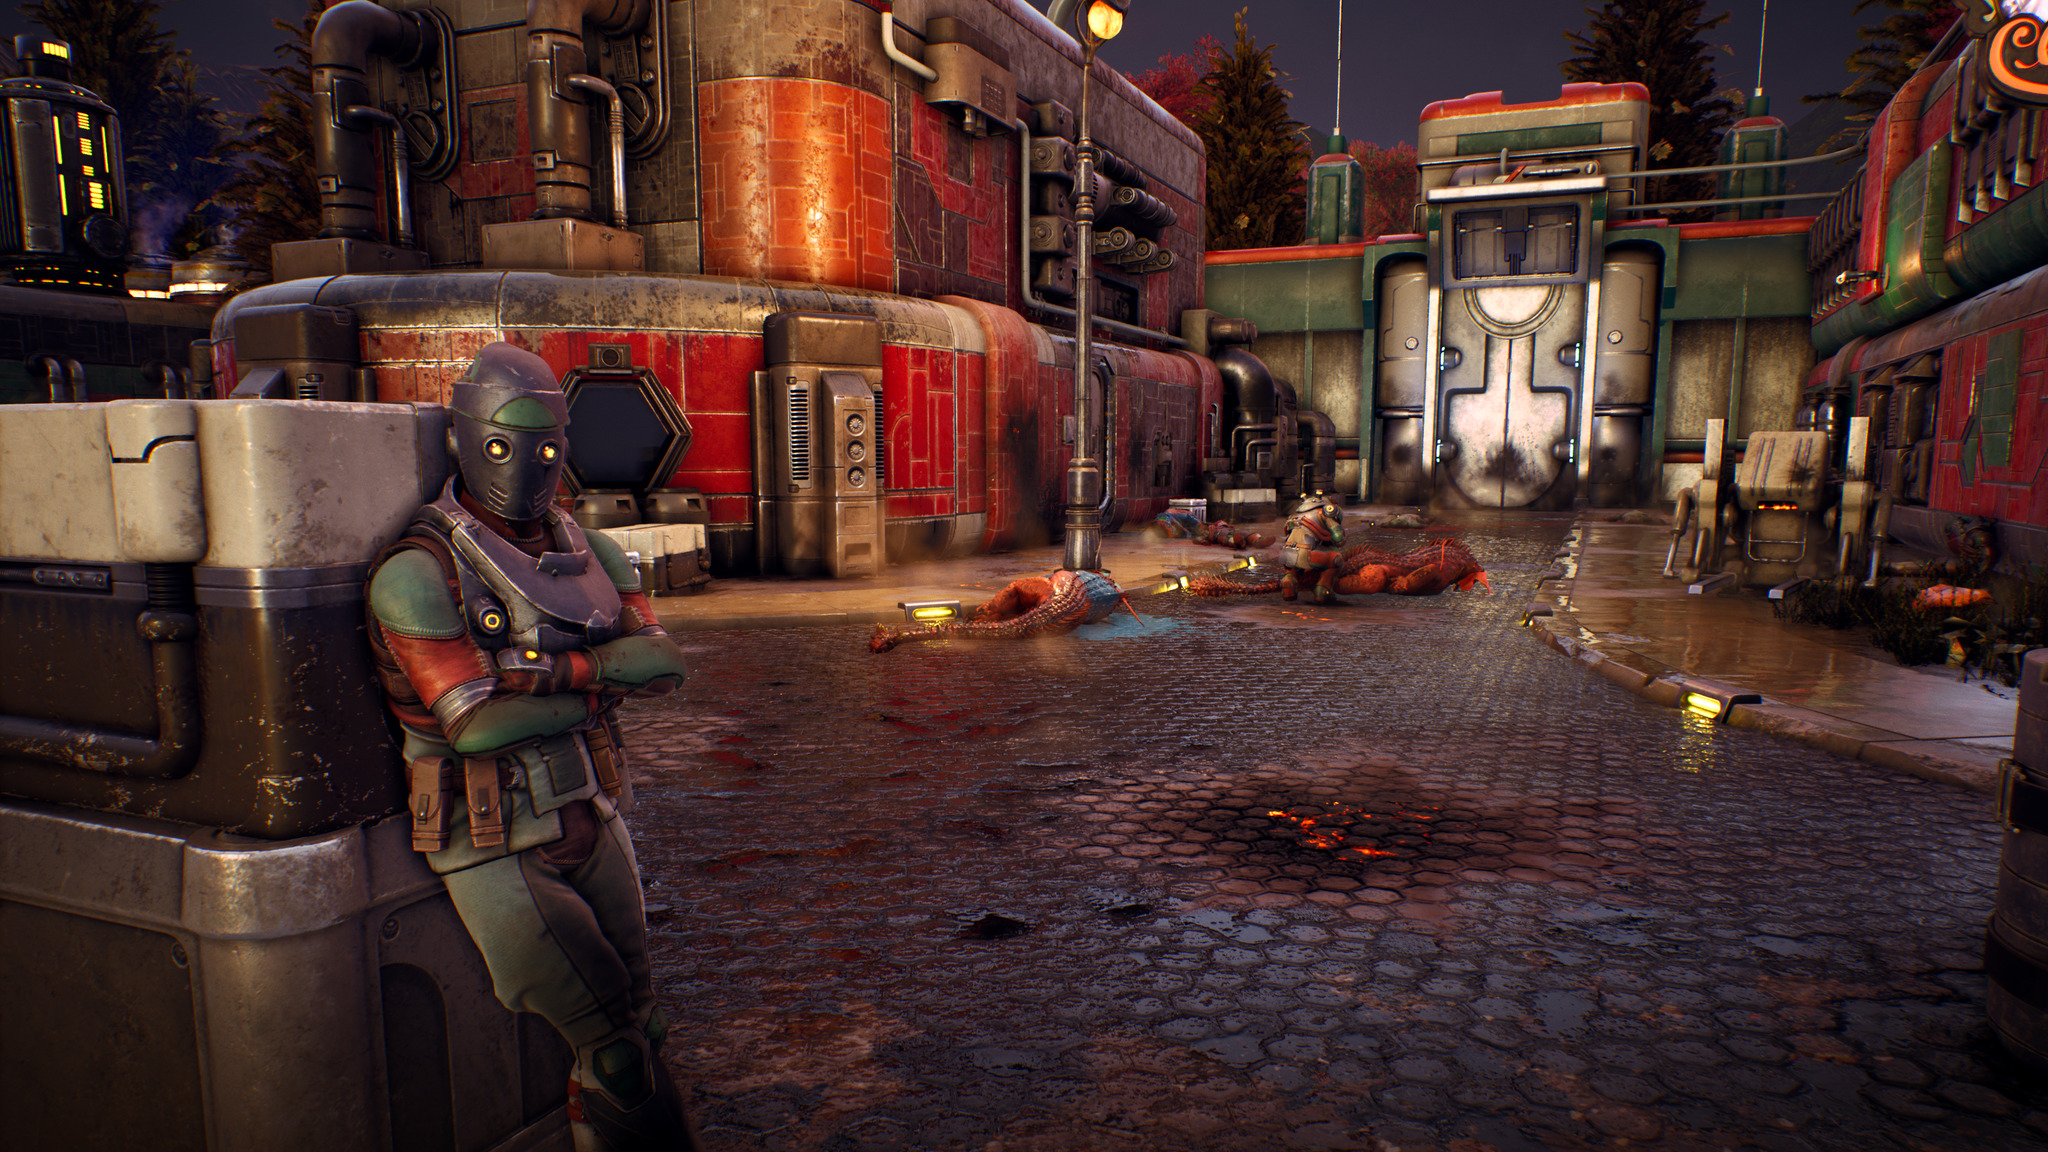 Outer Worlds interview: 'I think Fallout fans will enjoy our